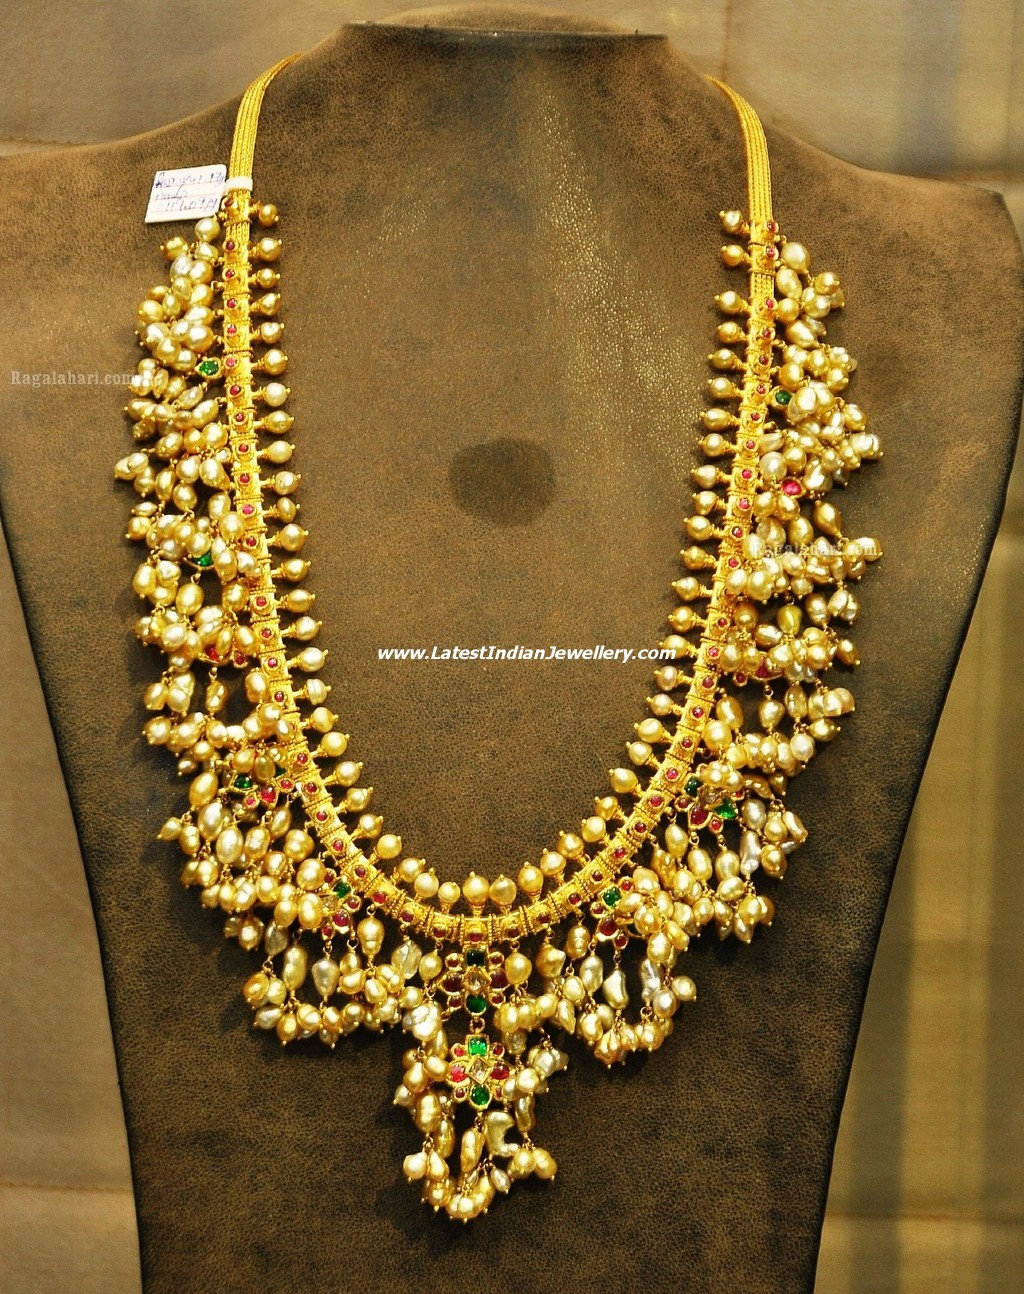 south indian traditional guttapusalu necklace with pearls